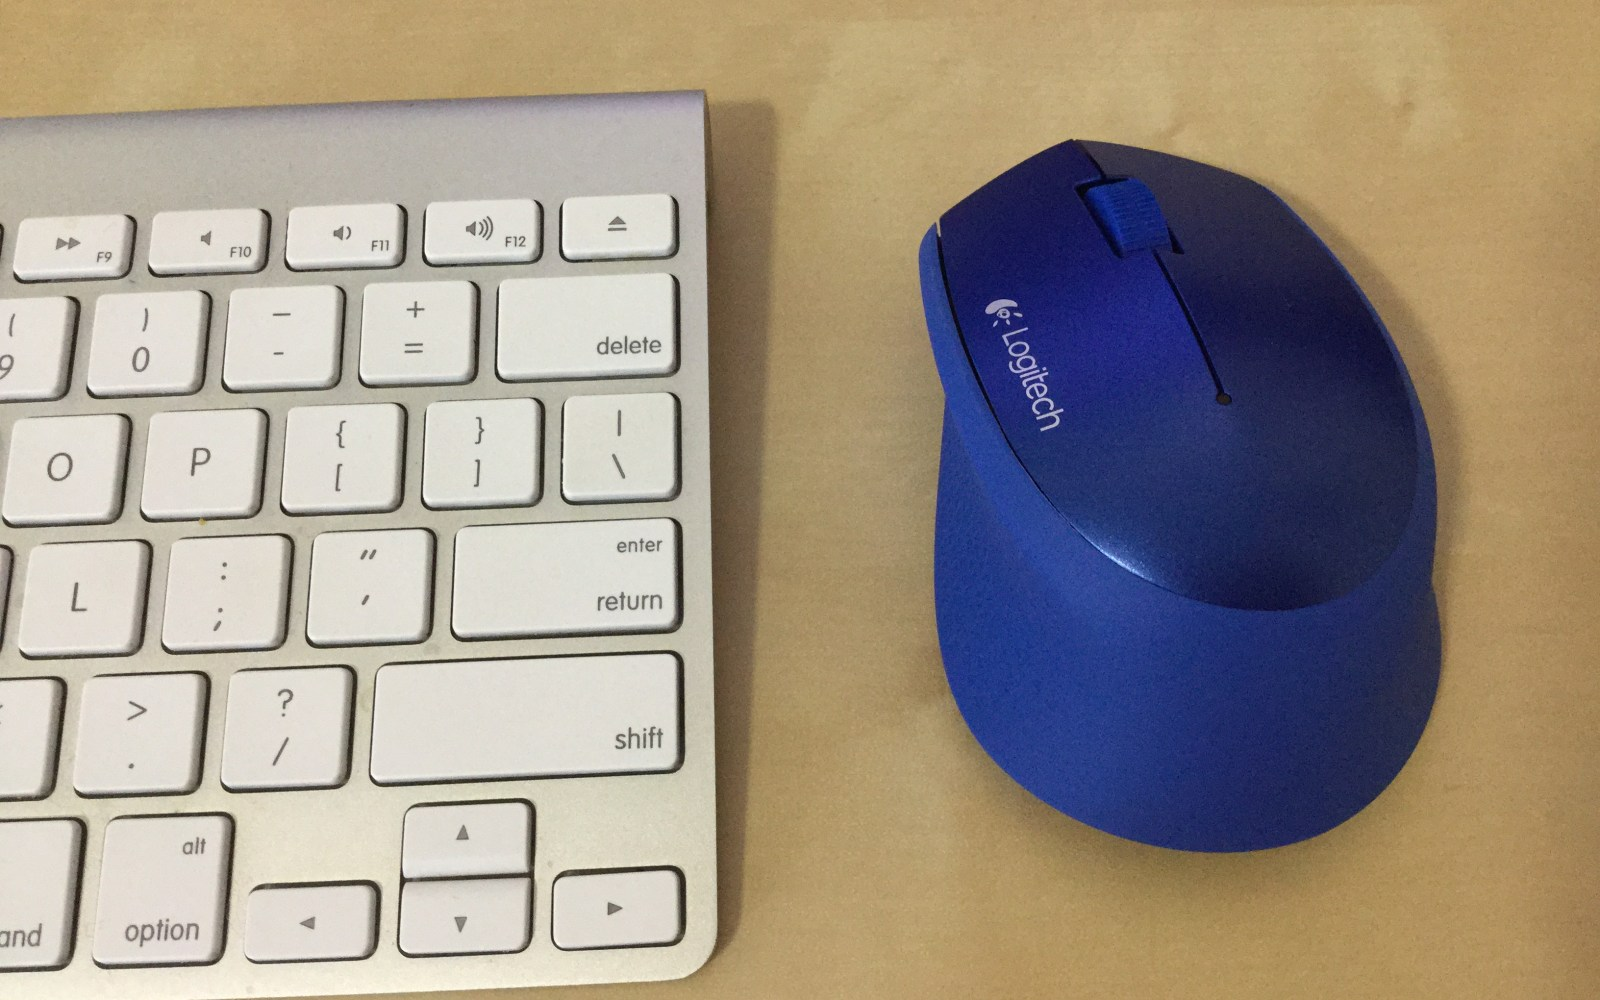 Review: Logitech m320 wireless mouse, an ergonomic and affordable solution